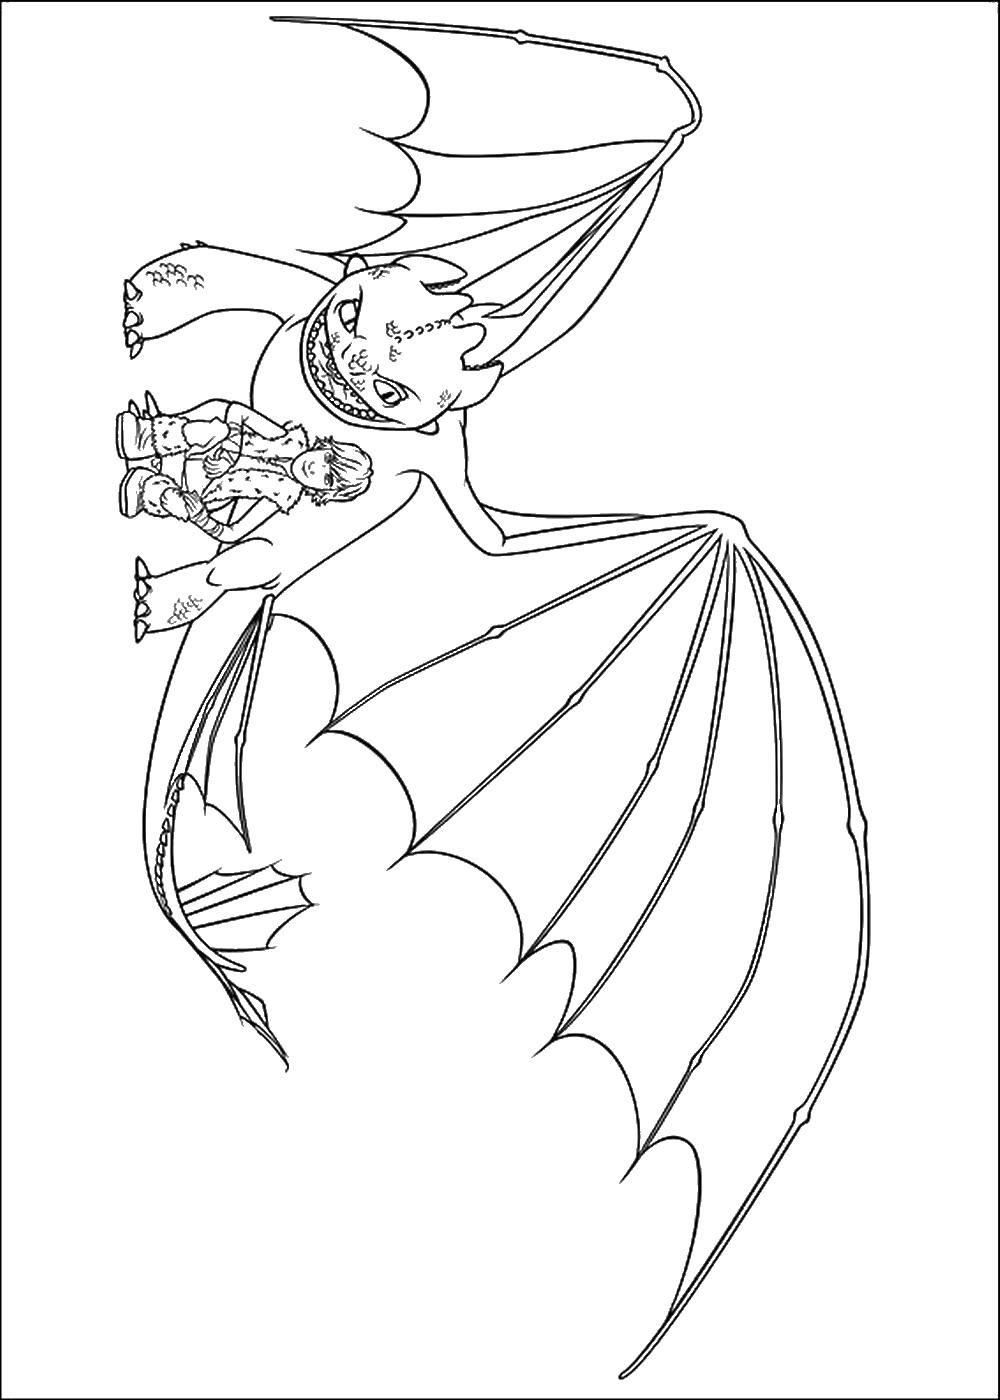 Printable coloring pages how to train your dragon - How To Train Your Dragon Printable Coloring Pages